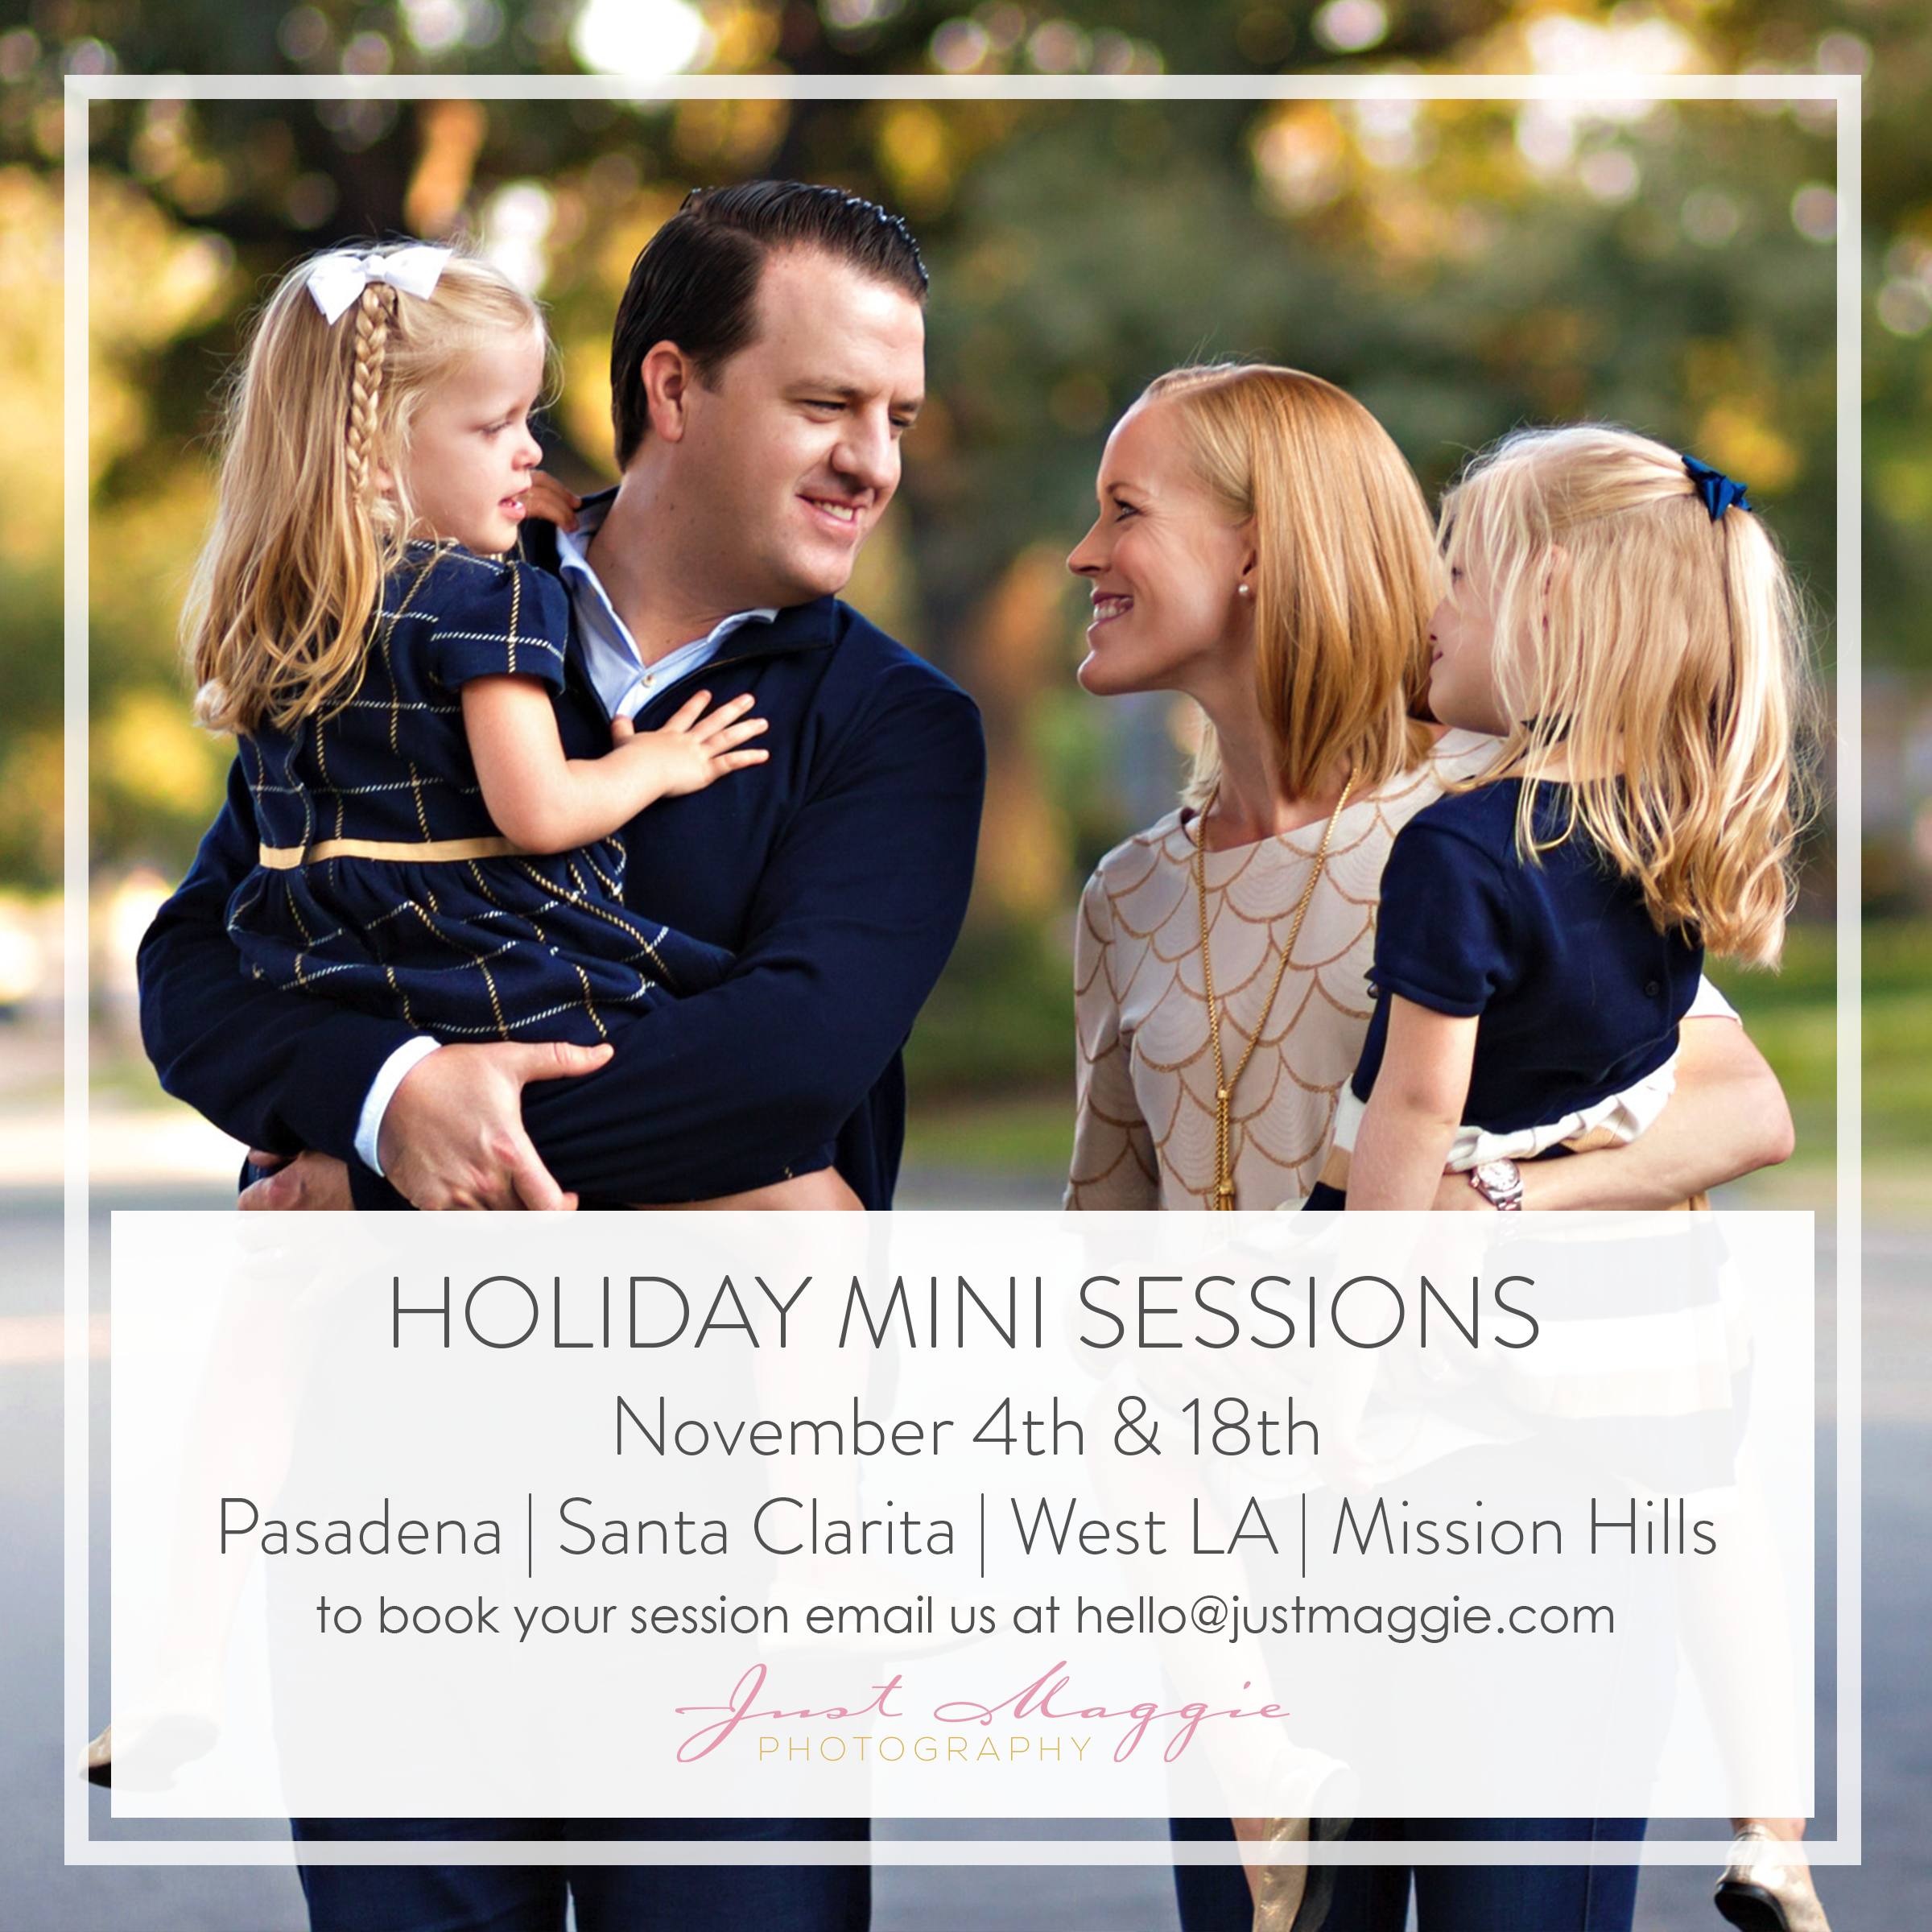 Holiday Mini Sessions by Just Maggie Photography - Los Angeles Family Photographer